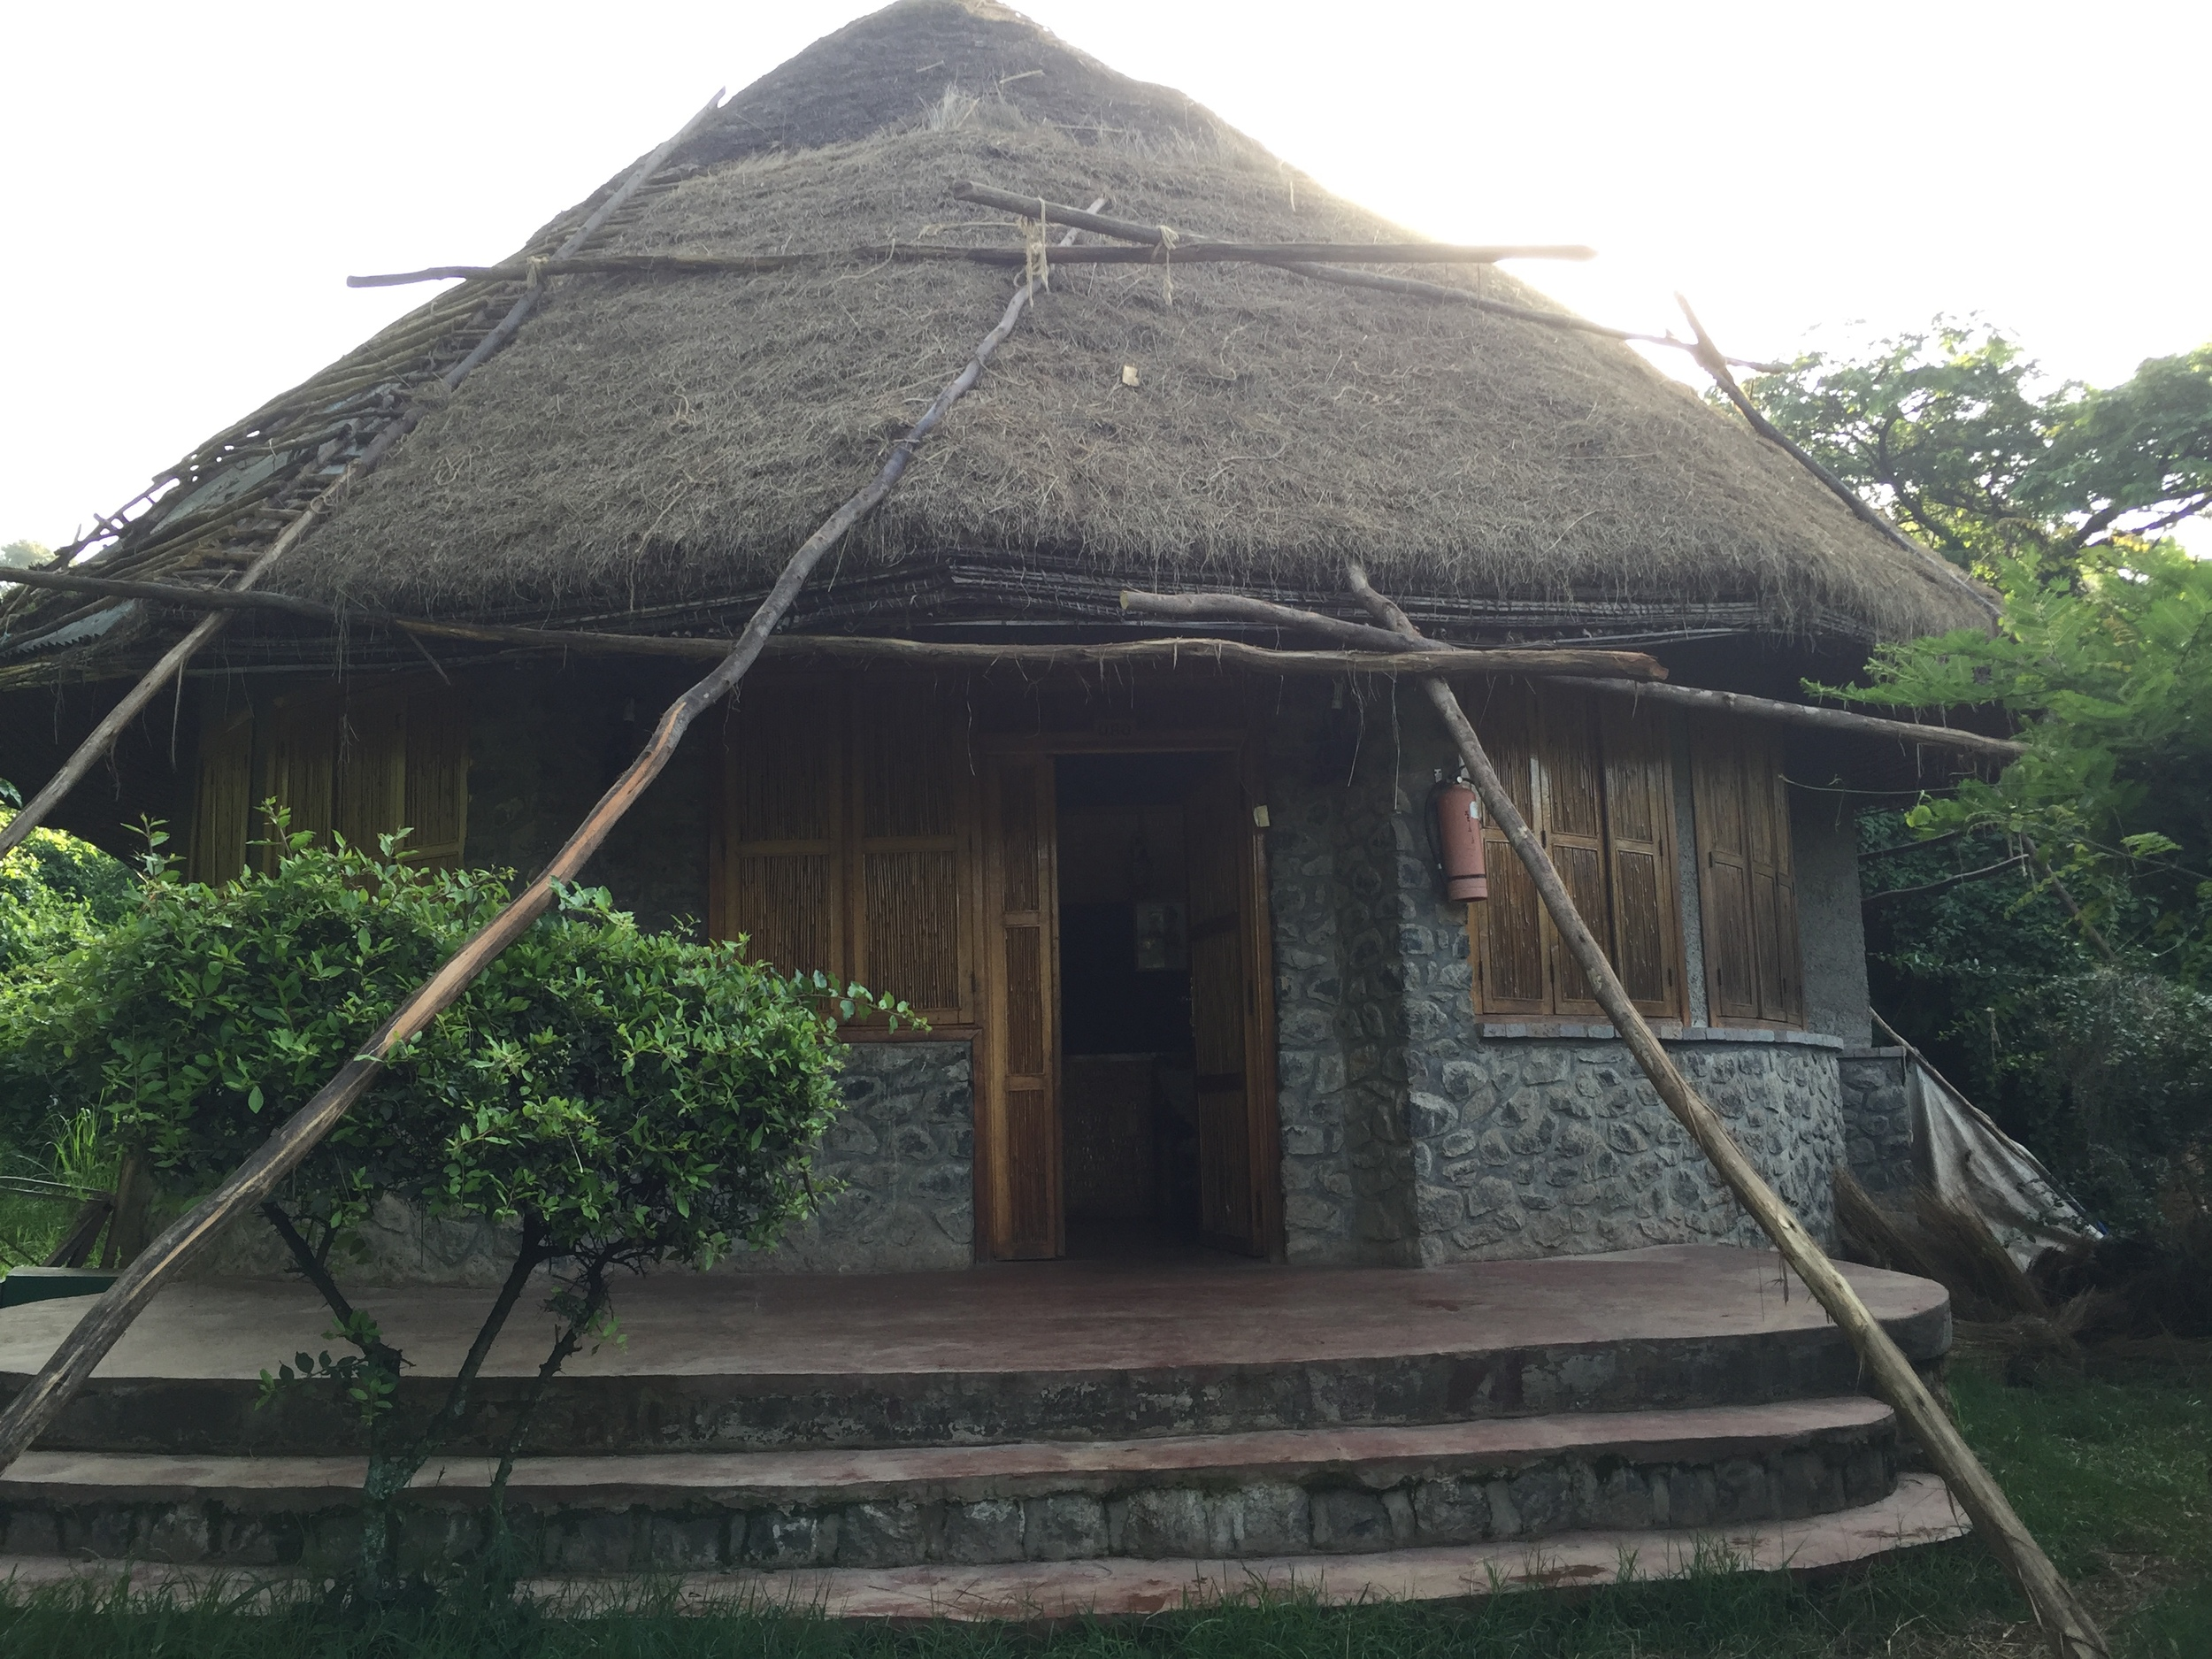 """This was a """"hotel room"""" that we stayed in. It was a large hut, and there were wild monkeys crawling all around it!"""